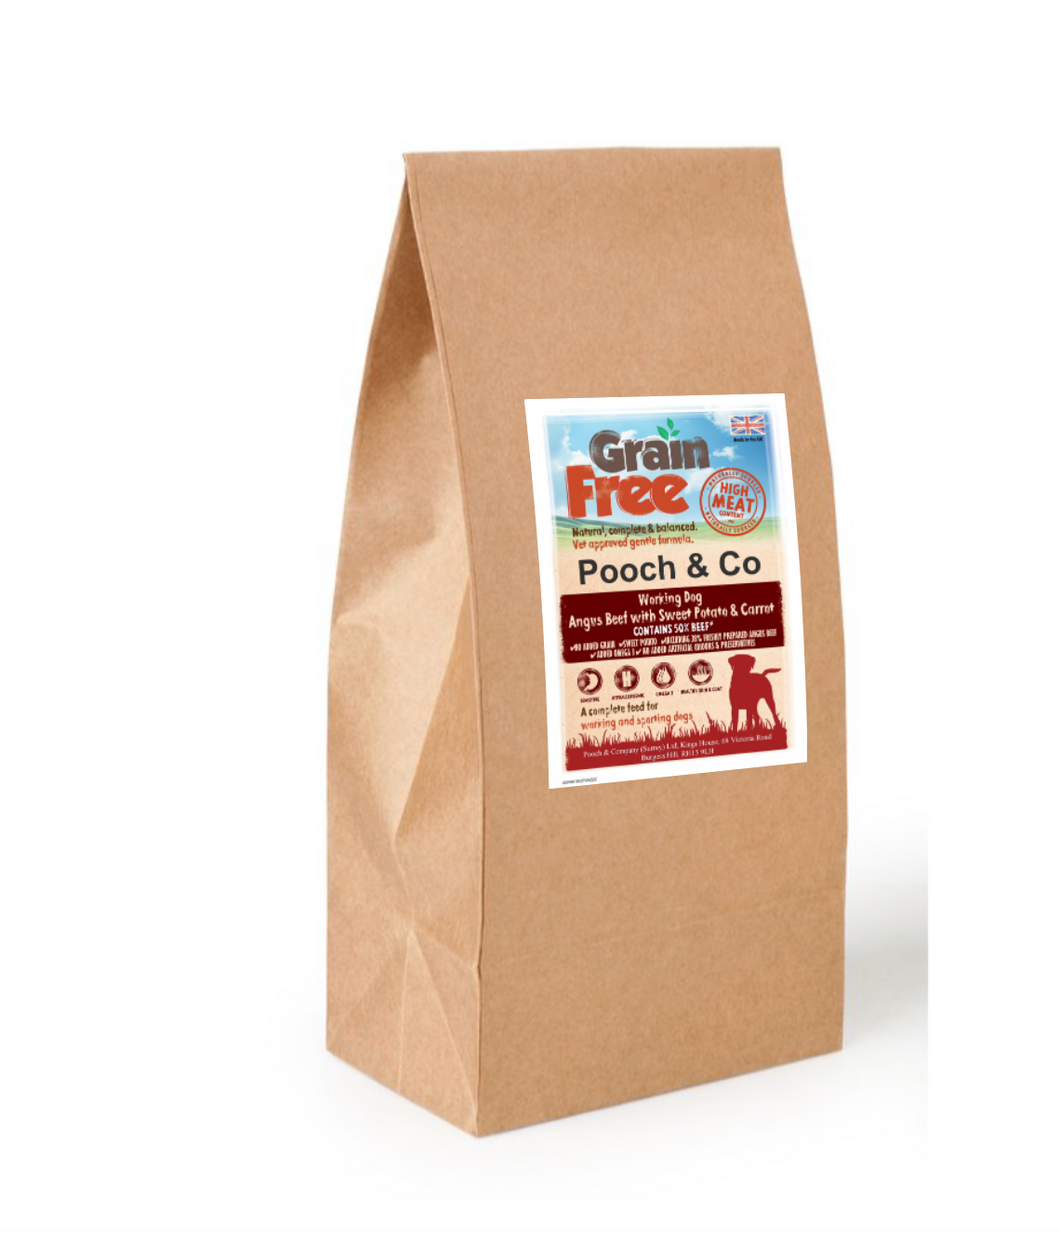 Grain Free Black Angus Beef  Strong and meaty, packed with nutritional goodness